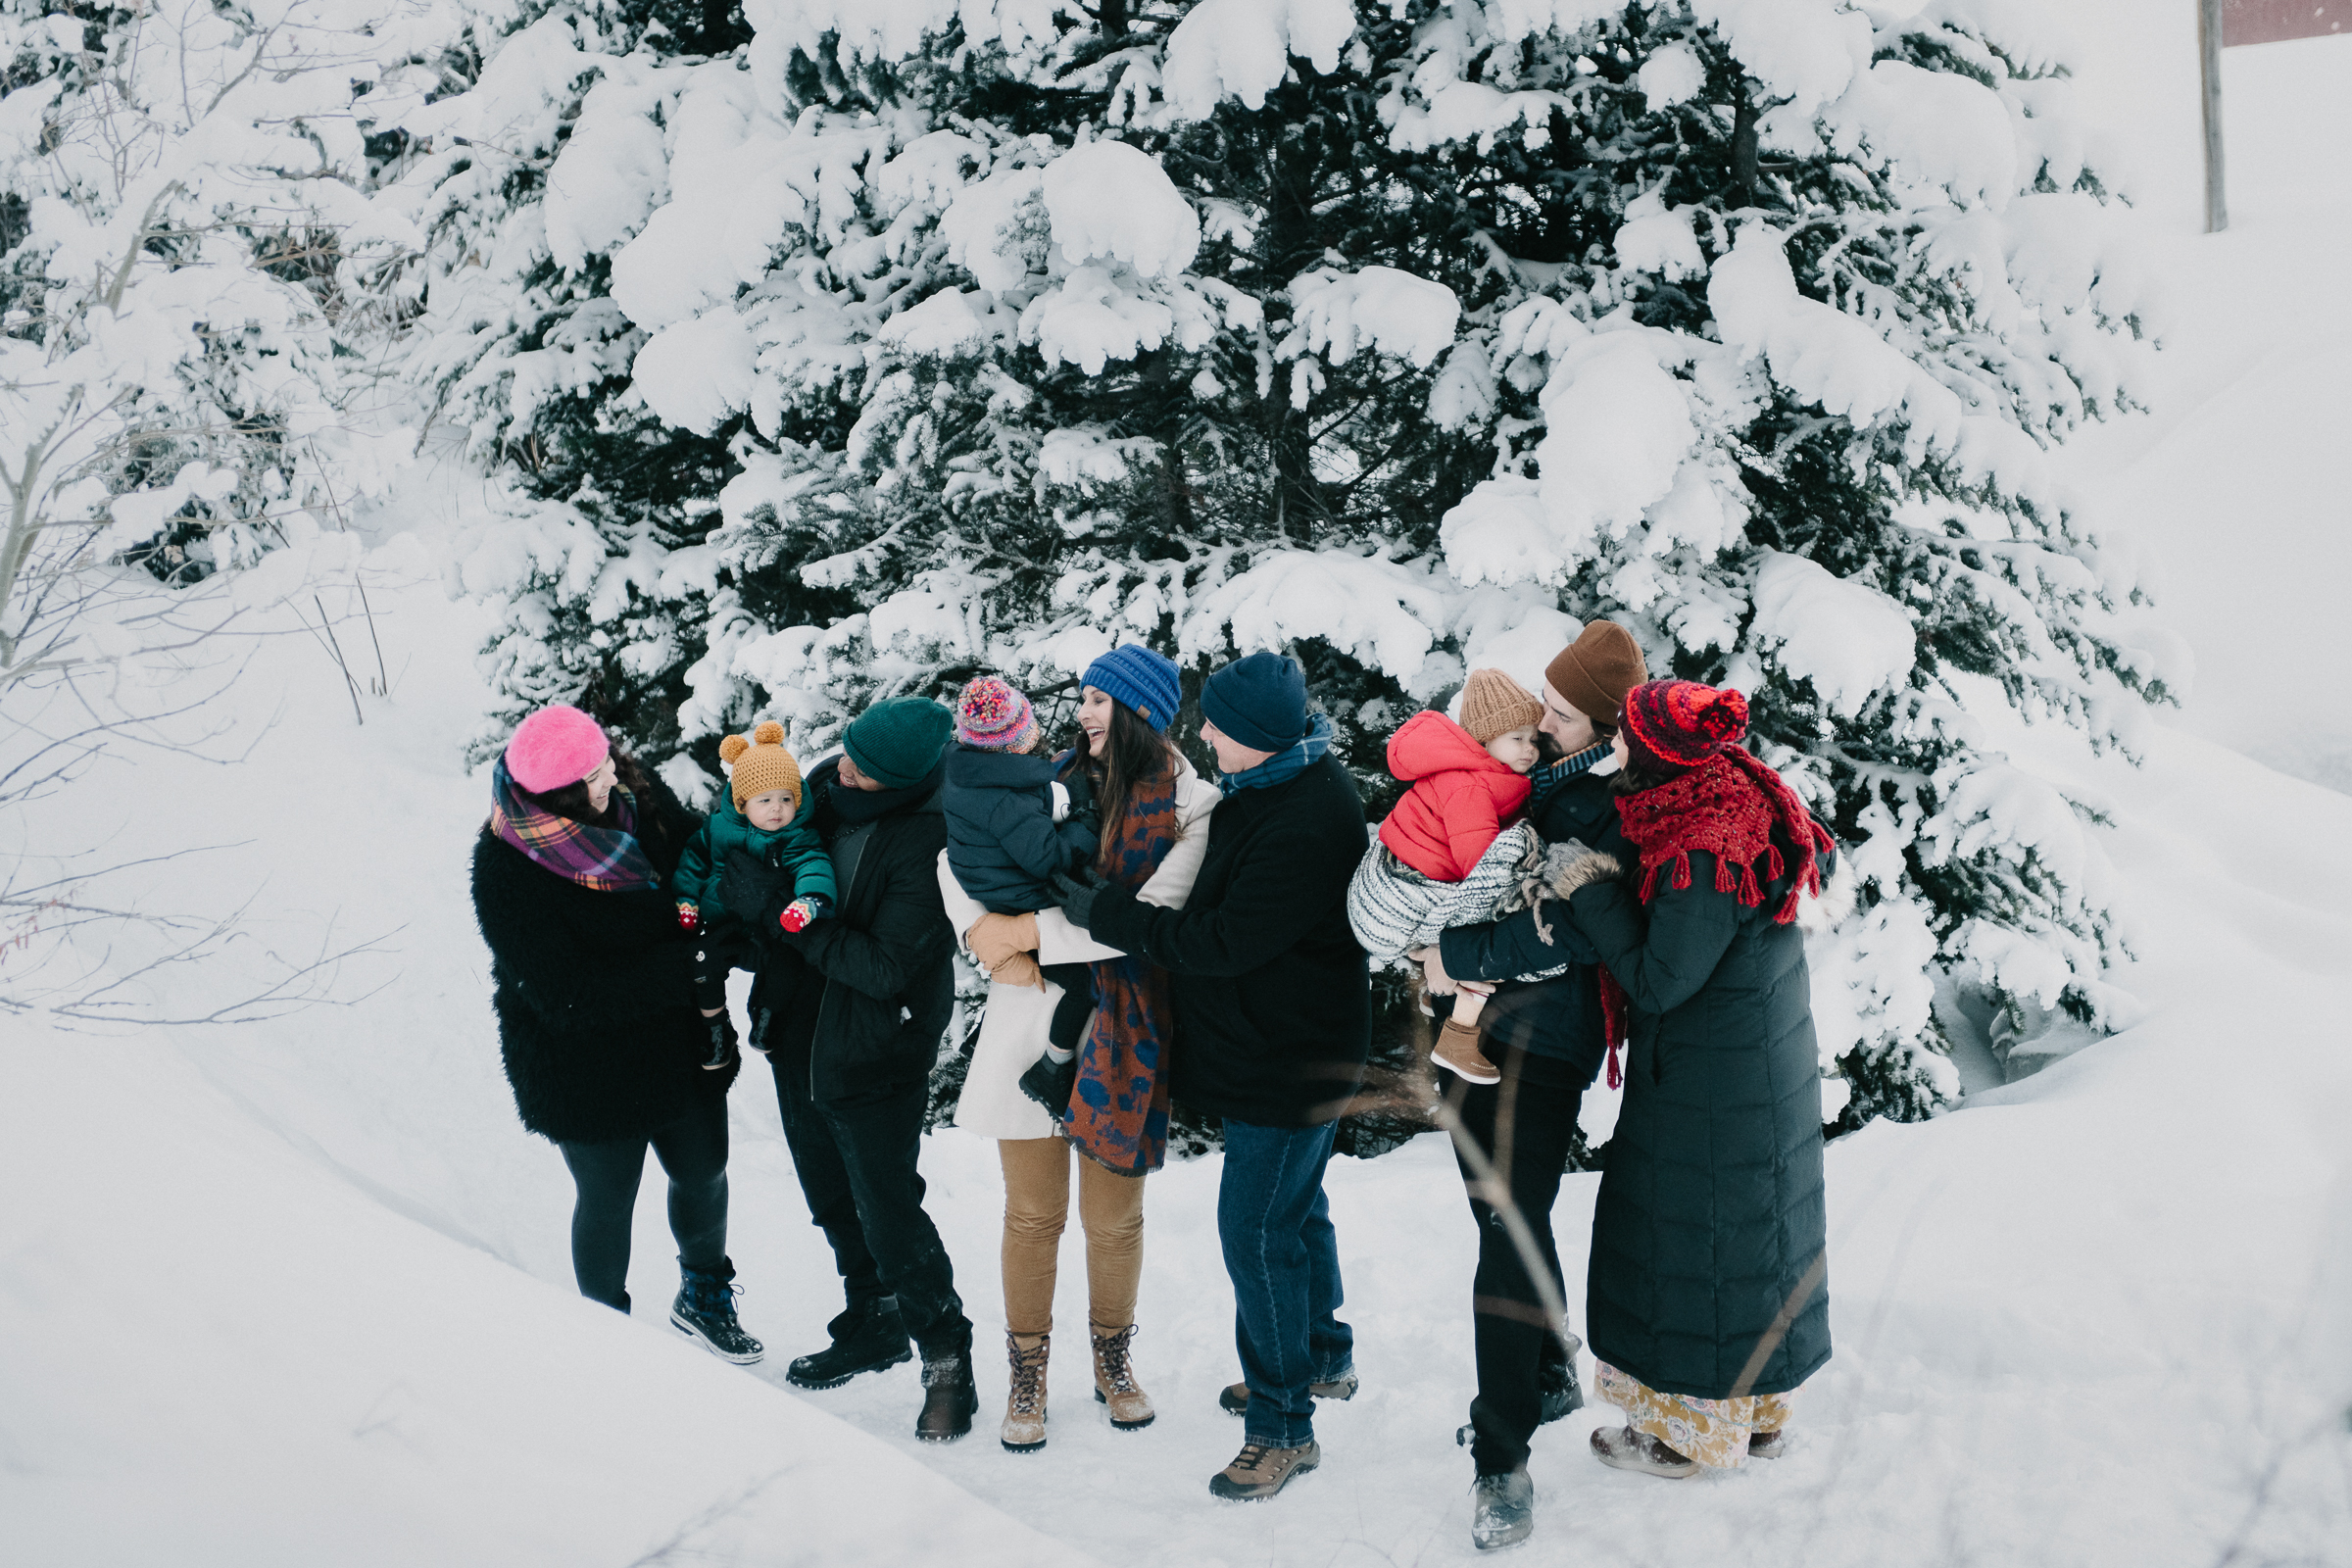 Extended family photo in the snow